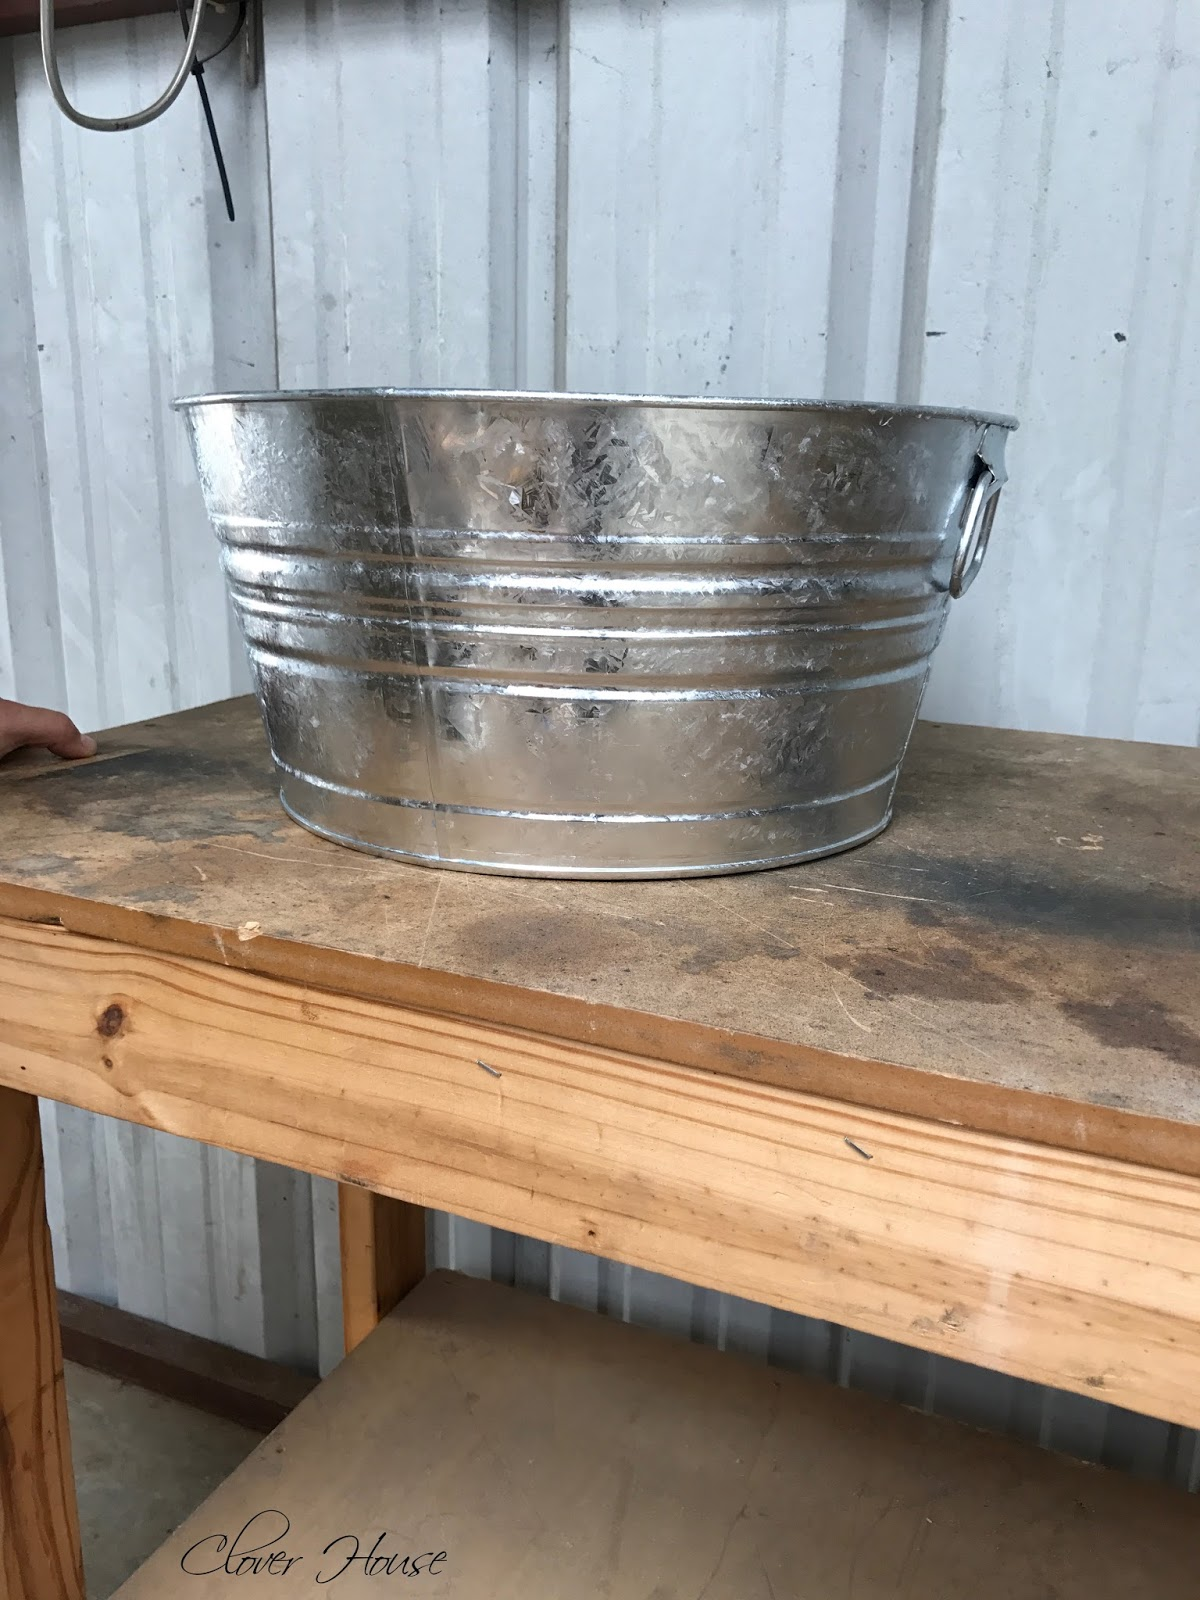 Clover house diy washtub sink for the shop for Galvanized tub kitchen sink